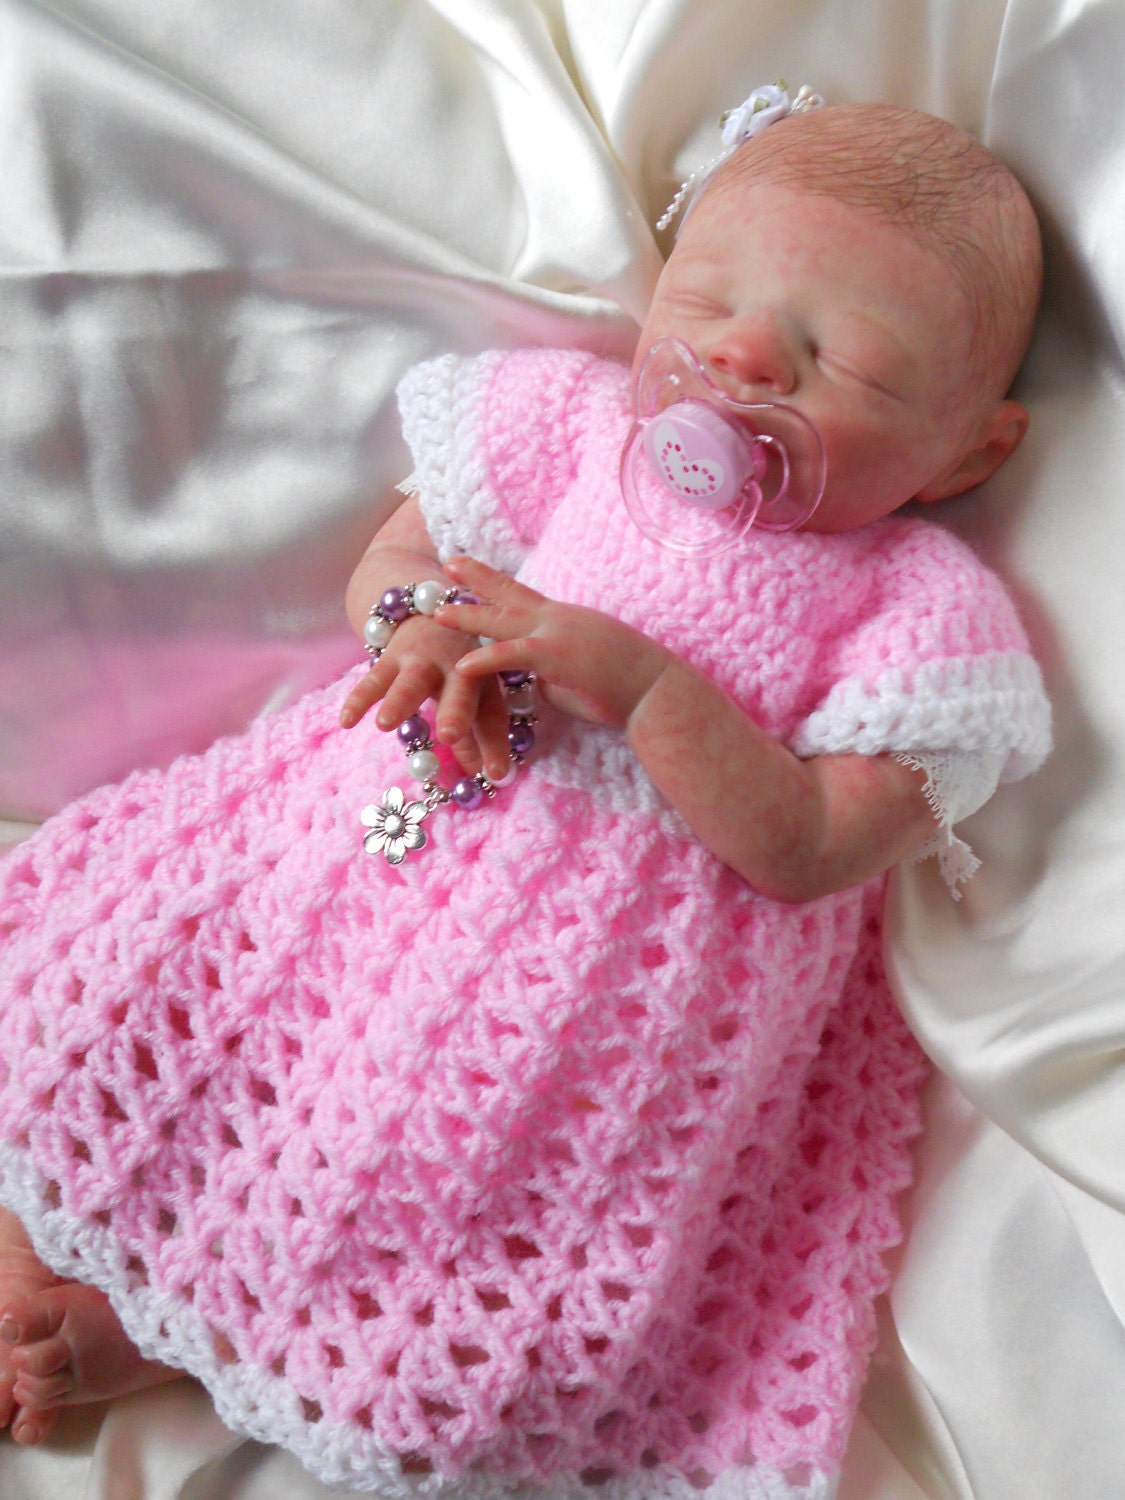 Crochet Patterns For Doll Clothes : PDF FILE Crochet pattern Simple Shells Dress Baby by ...